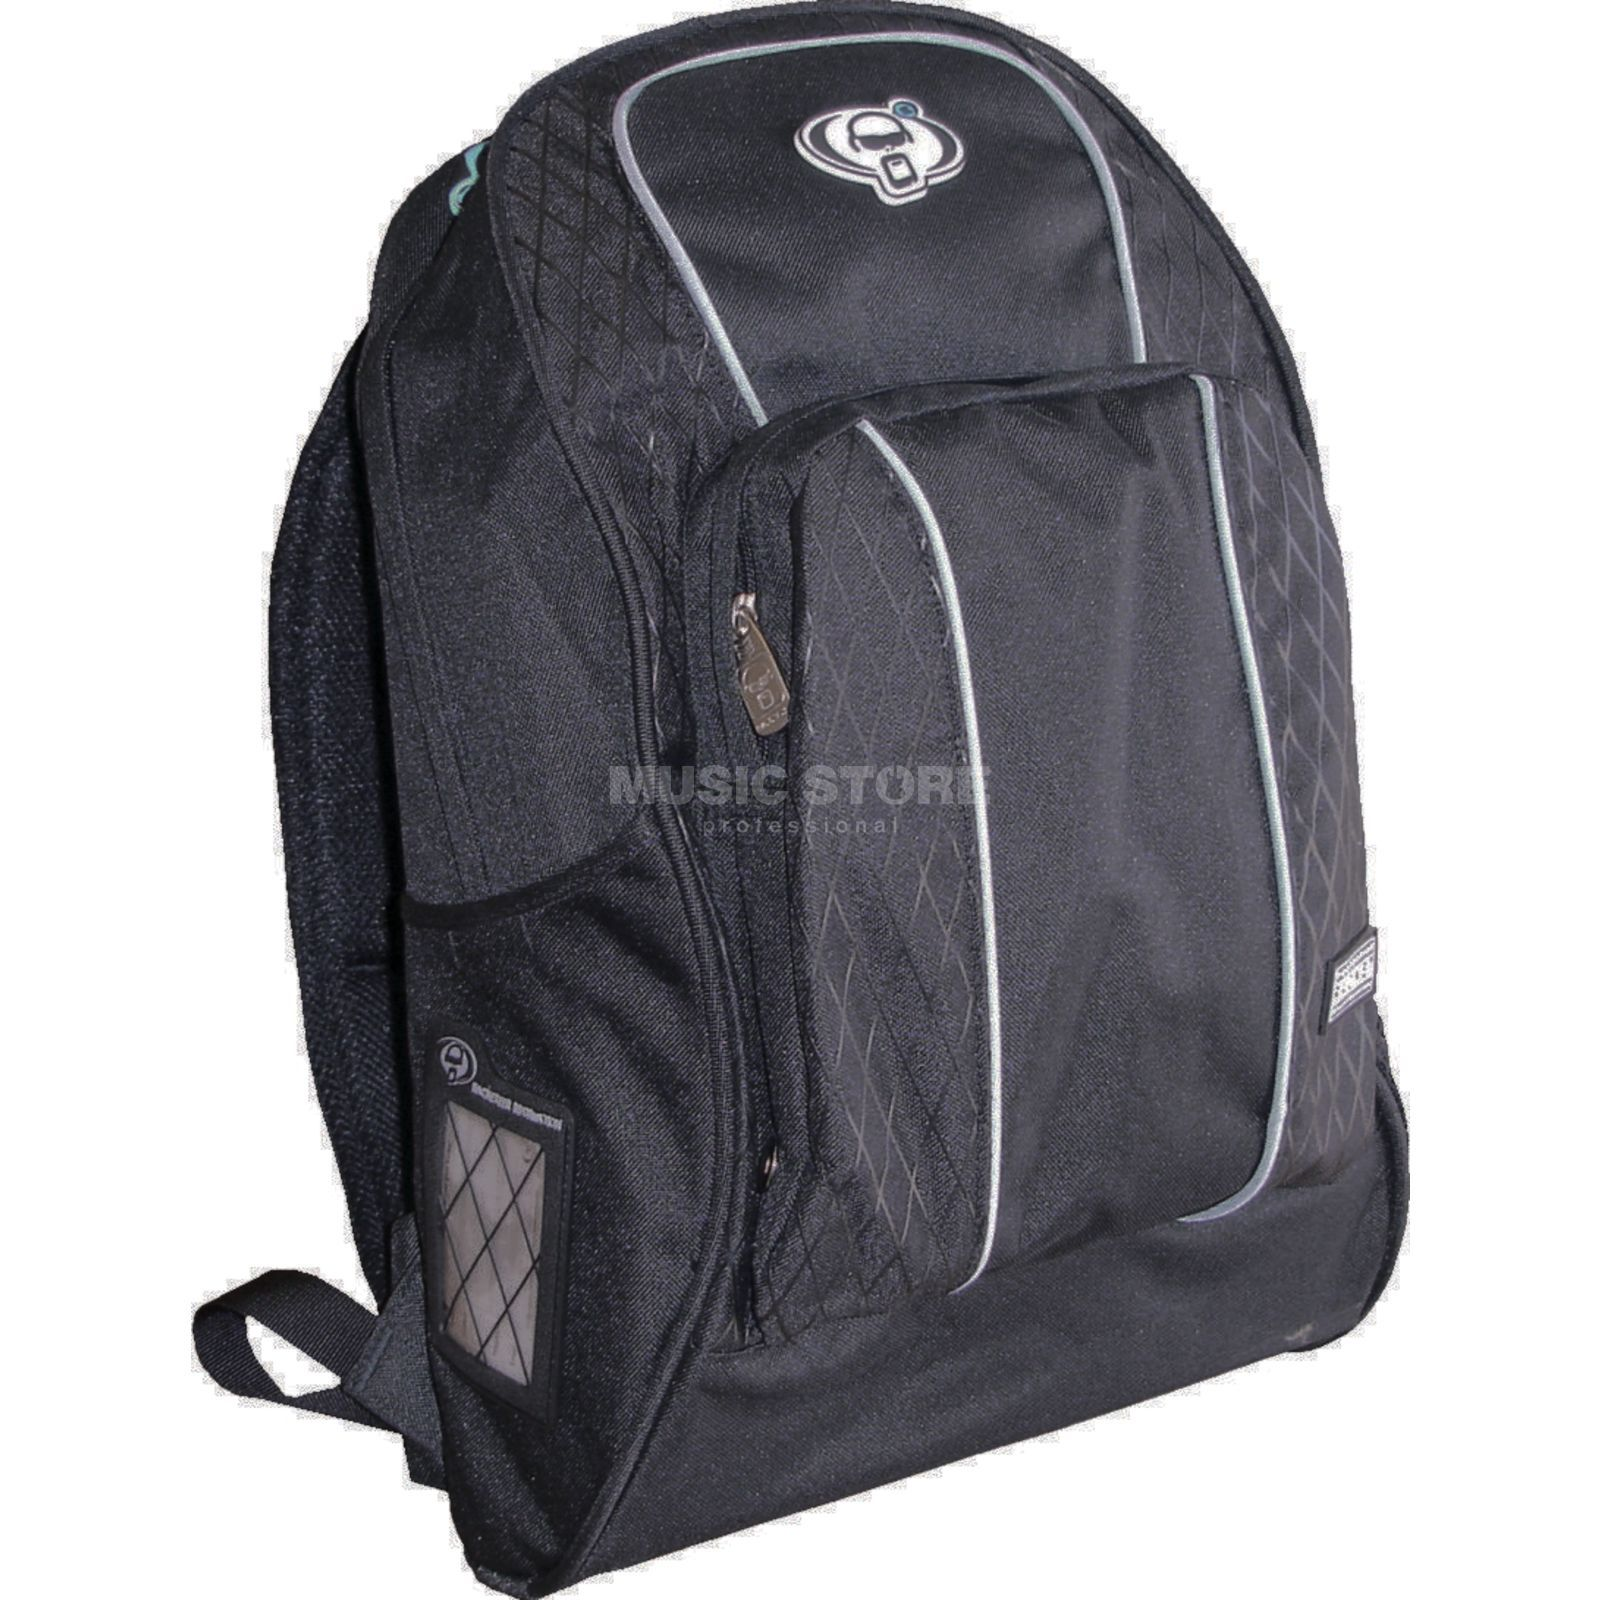 "Protection Racket Rucksack ""Streamline"" 9418-00, 30x15x45cm Produktbild"